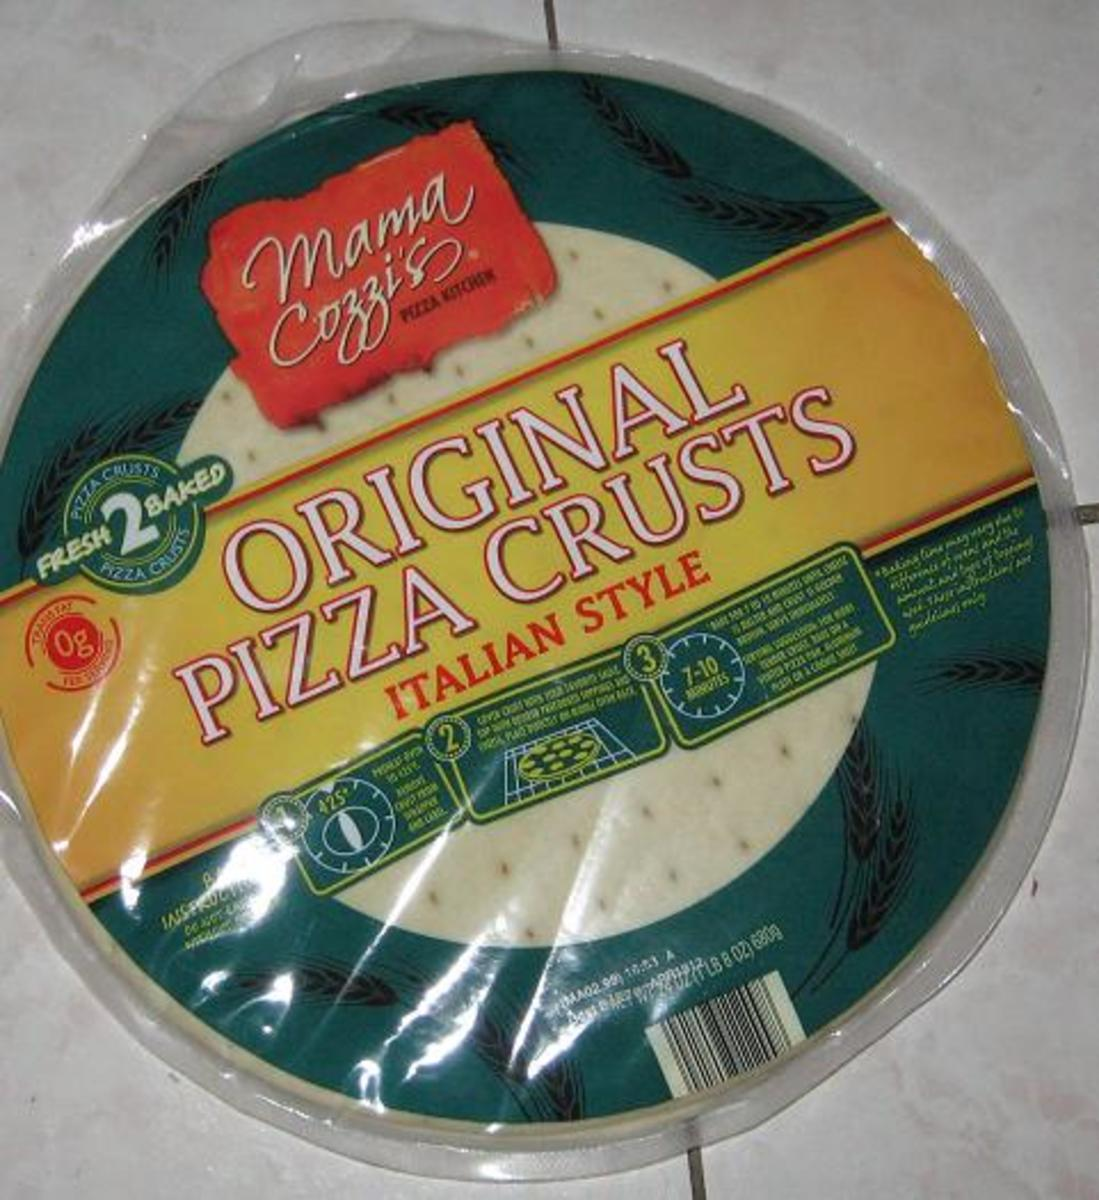 A Review of Mama Cozzi's Original Pizza Crusts From Aldi